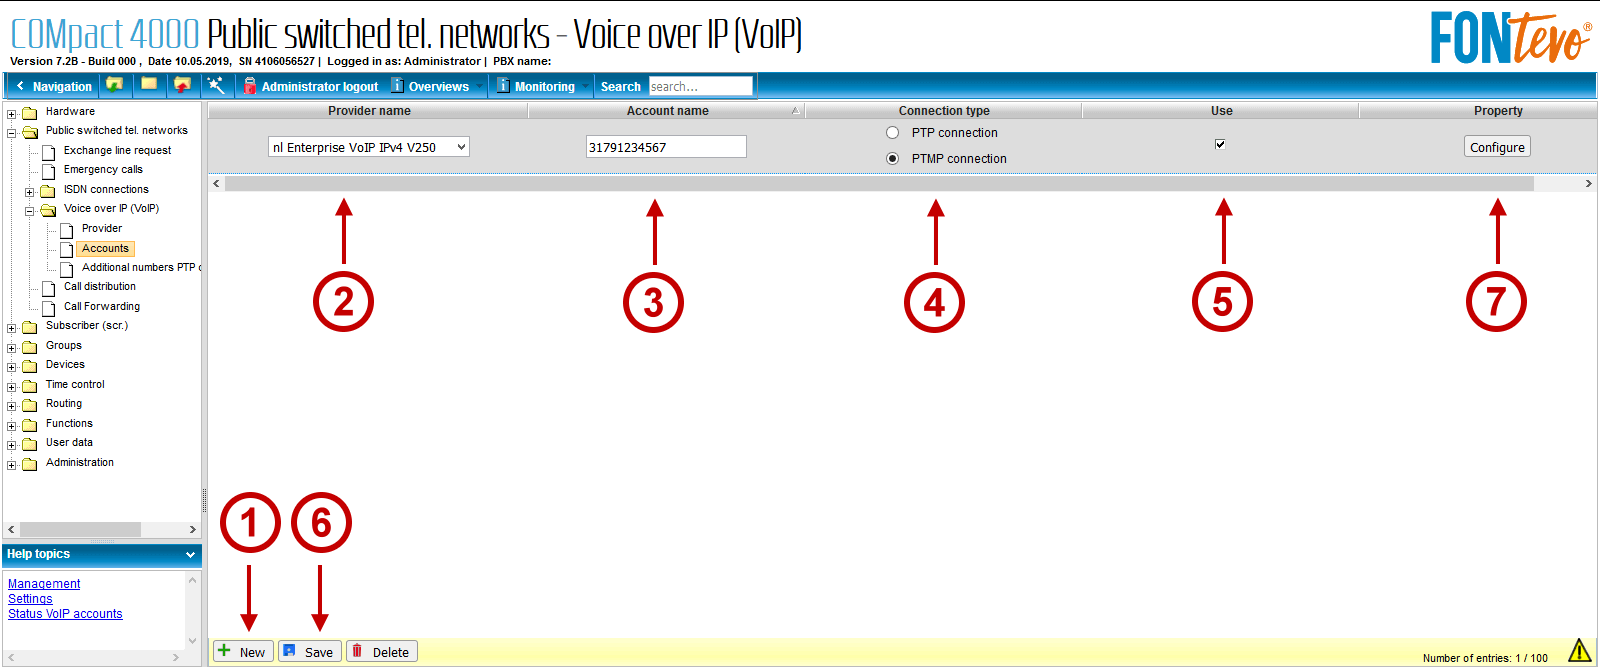 FONtevo en EnterpriseVoIP VoIP account aanmaken 1 van 2